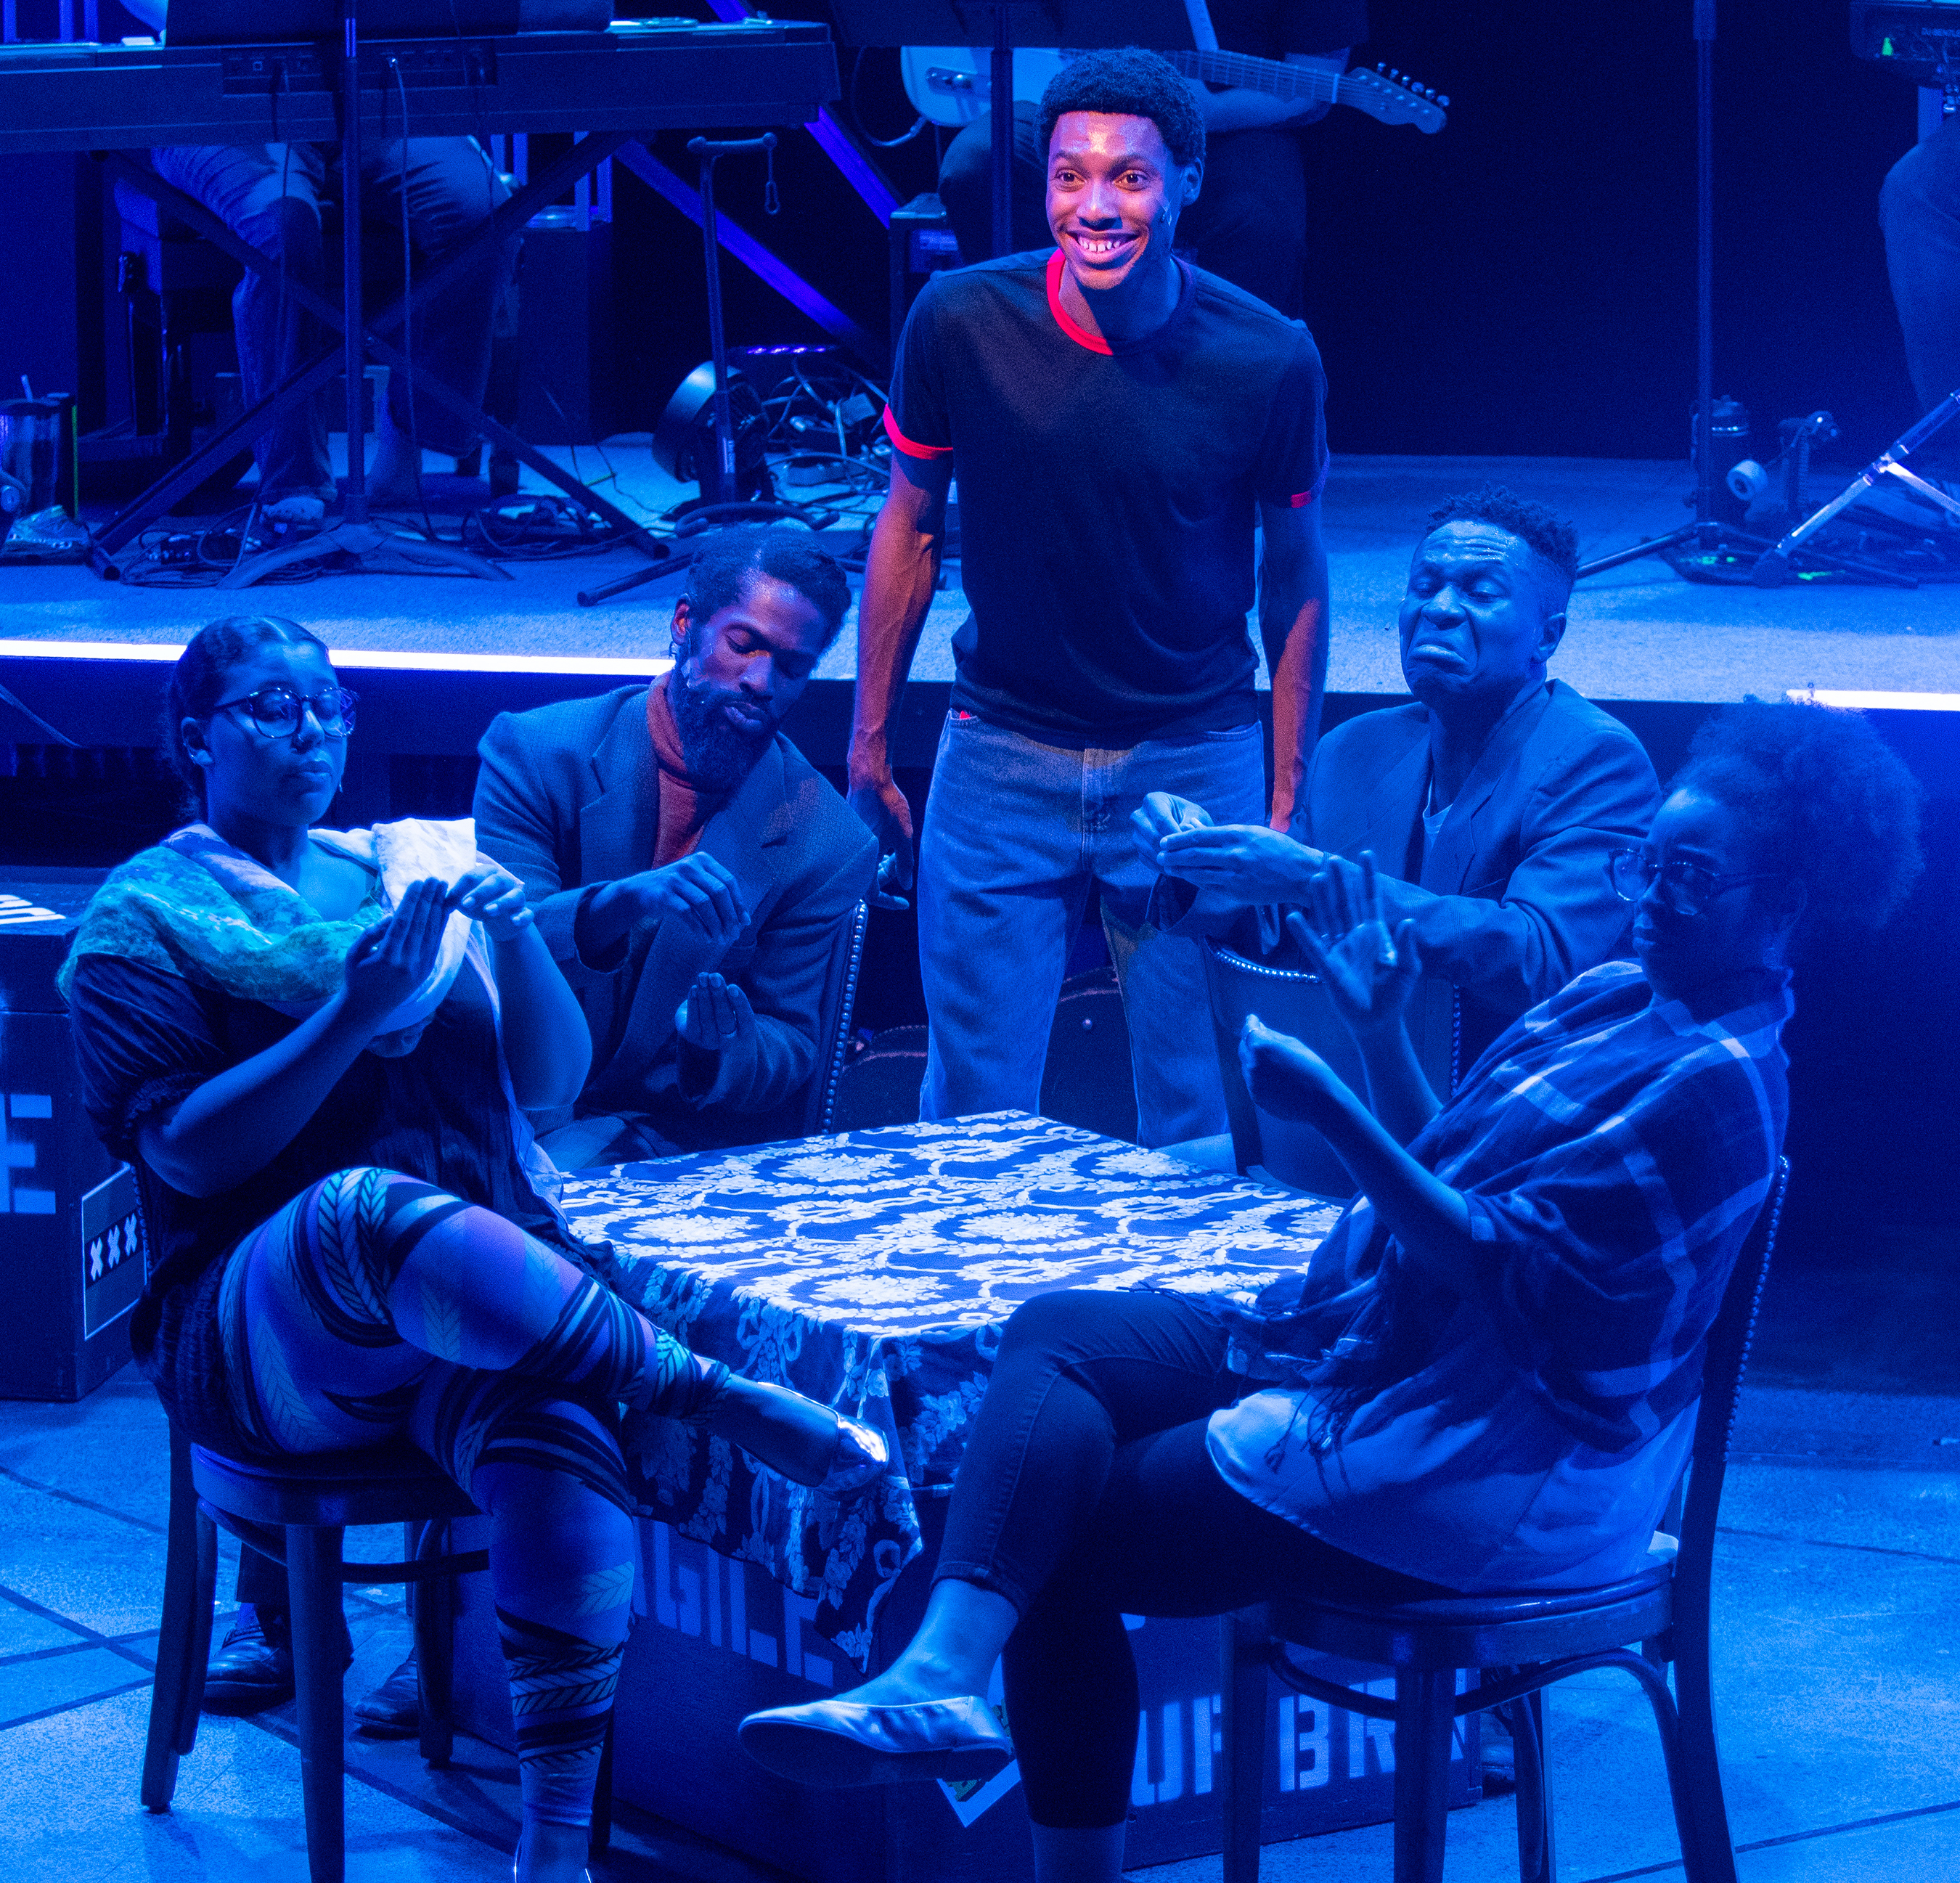 Passing Strange - Dylan Jones, Keydron Dunn, Keaton Hillman, Jamar Jones, Katrinah Carol Lewis, photo by Bill Sigafoos